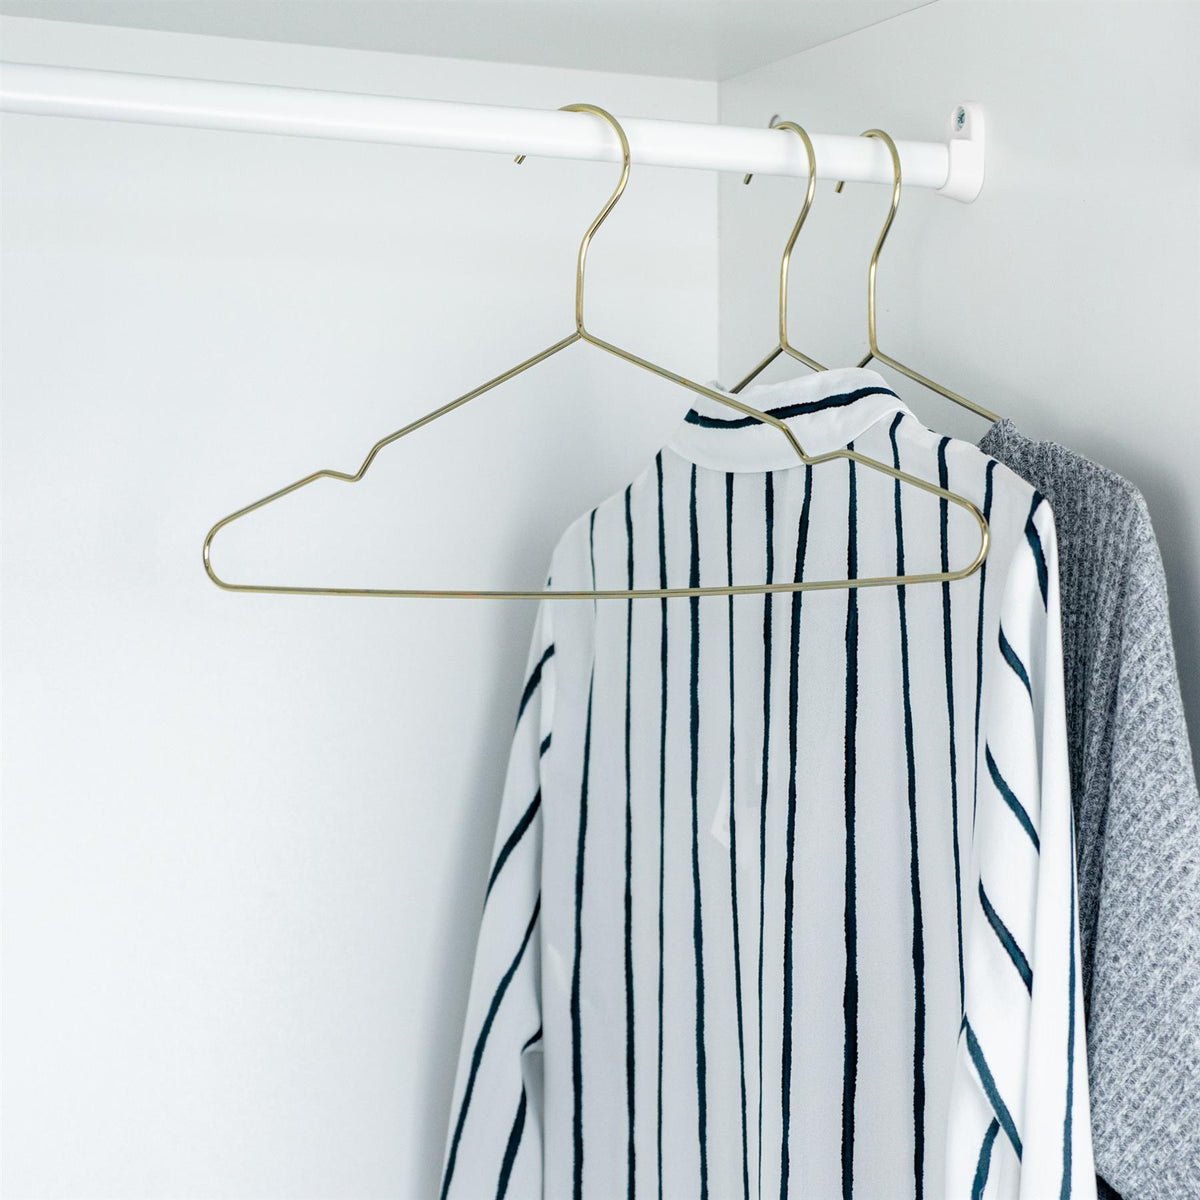 hangers wholesale uk